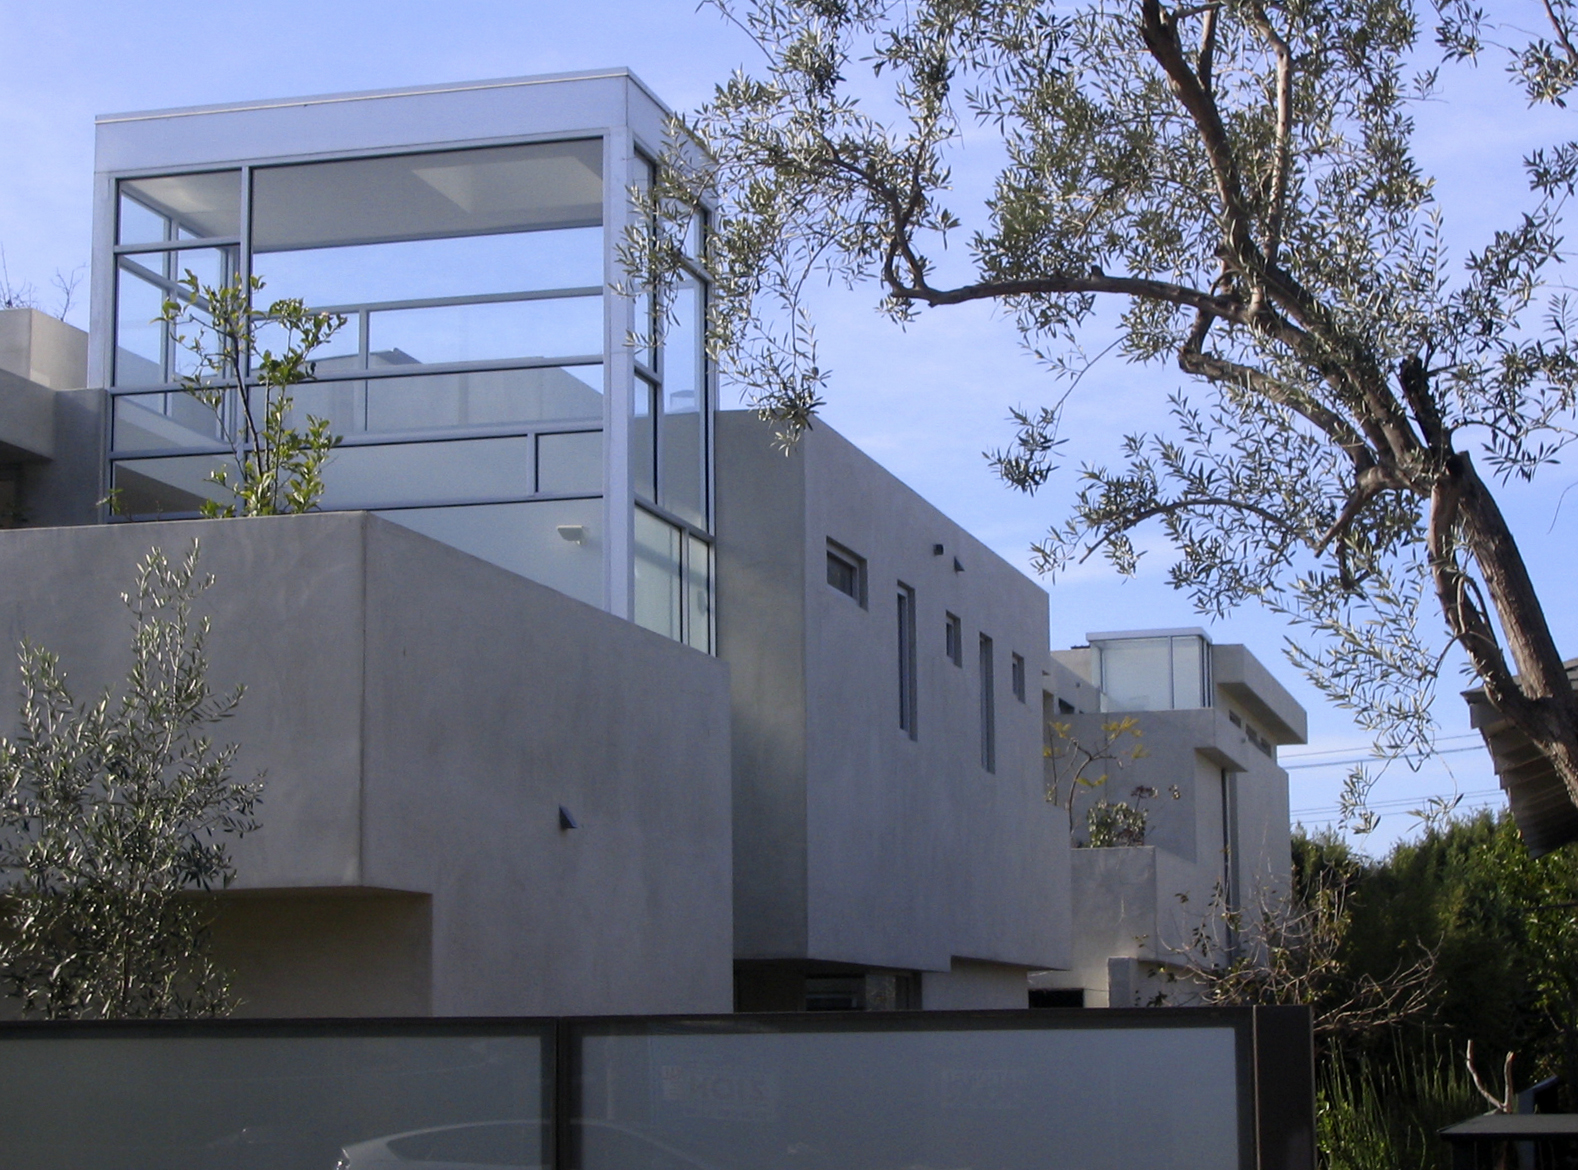 S.E.A.-Studio-Environmental-Architecture-David-Hertz-FAIA-West-Los-Angeles-Mar-Vista-sustainable-regenerative-restorative-design-modern-residential-adaptive-reuse-remodel-mindful-pool-concrete-skylights-passive-systems-natural-ventilation-garden-12.JPG